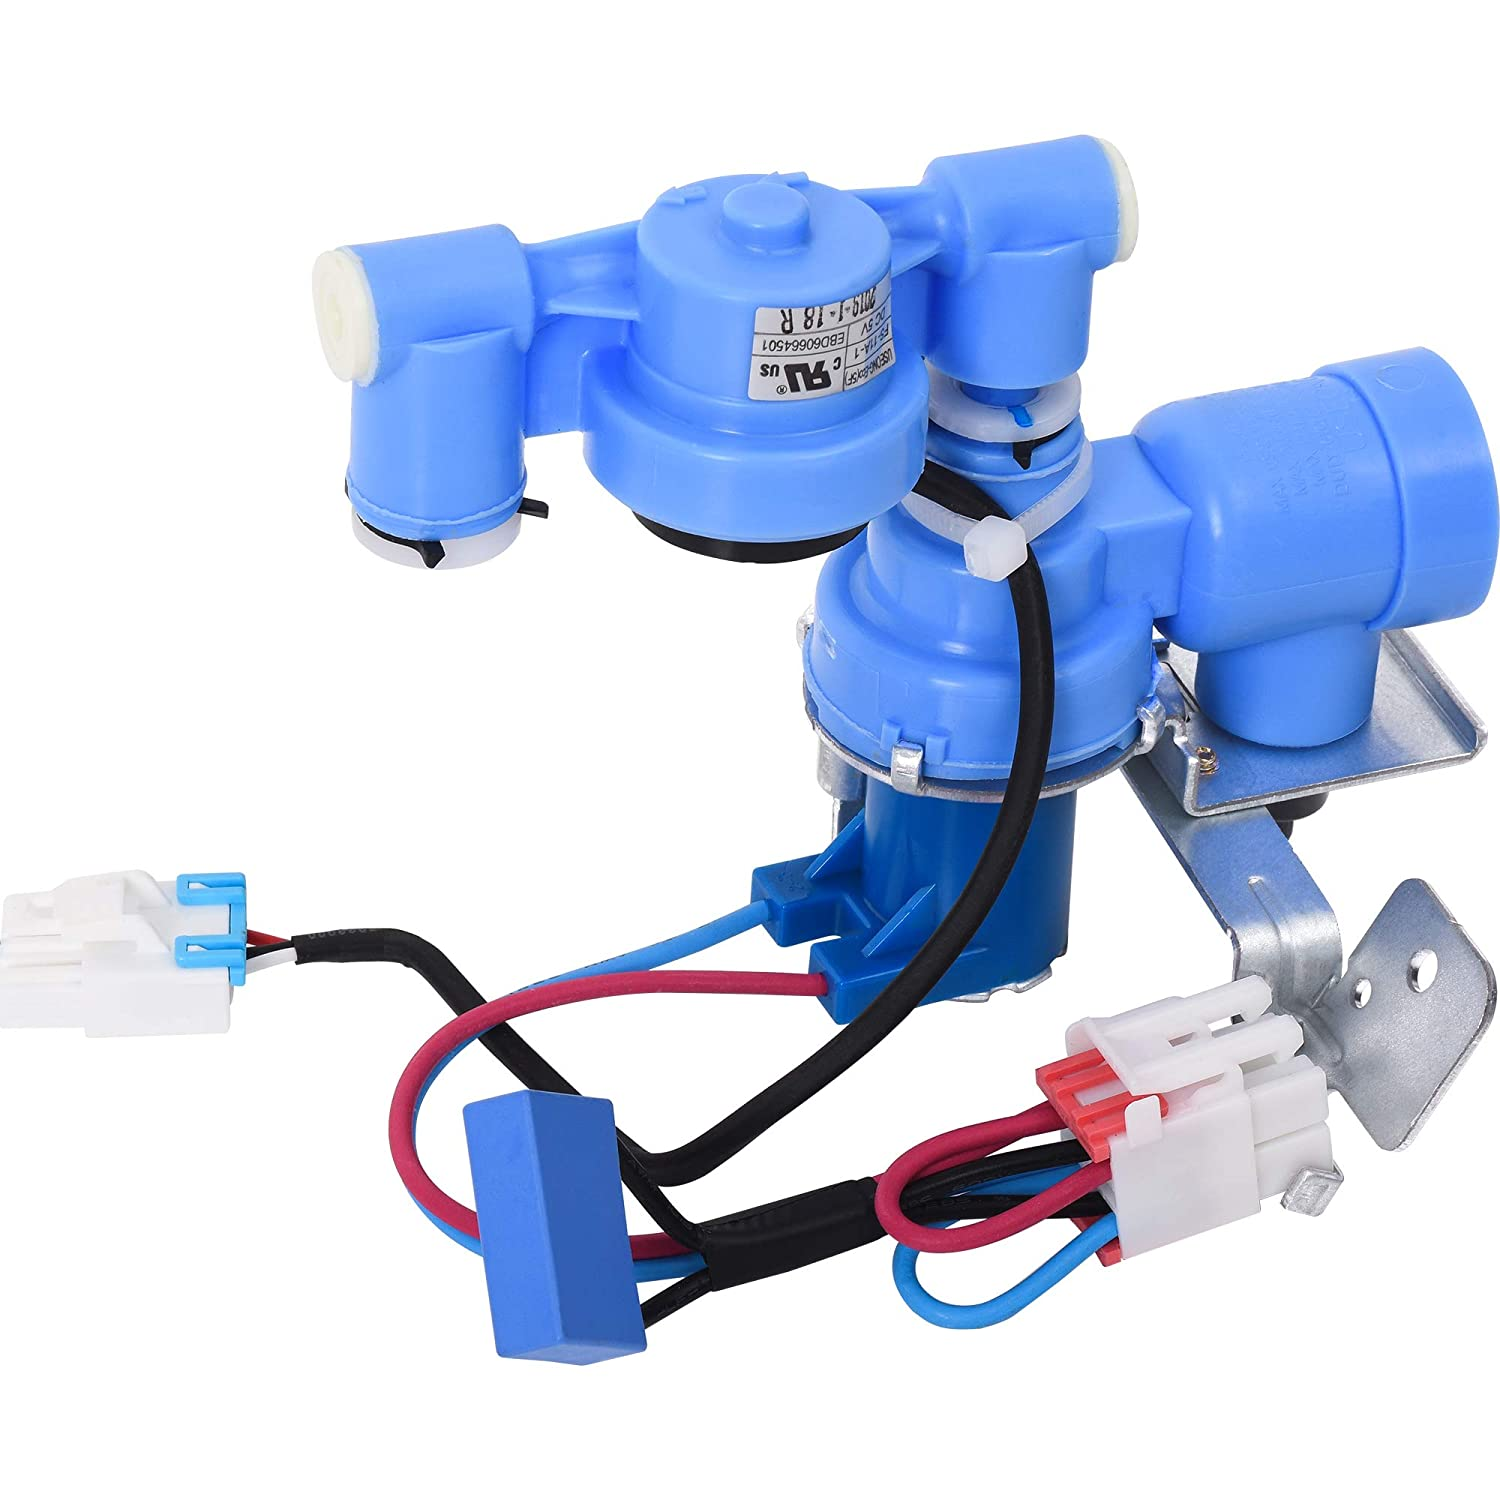 Ultra Durable AJU72992601 Refrigerator Water Inlet Valve Replacement Part by Blue Stars - Exact Fit for LG Refrigerators - Replaces 5221JA2011J 5221JA2011P